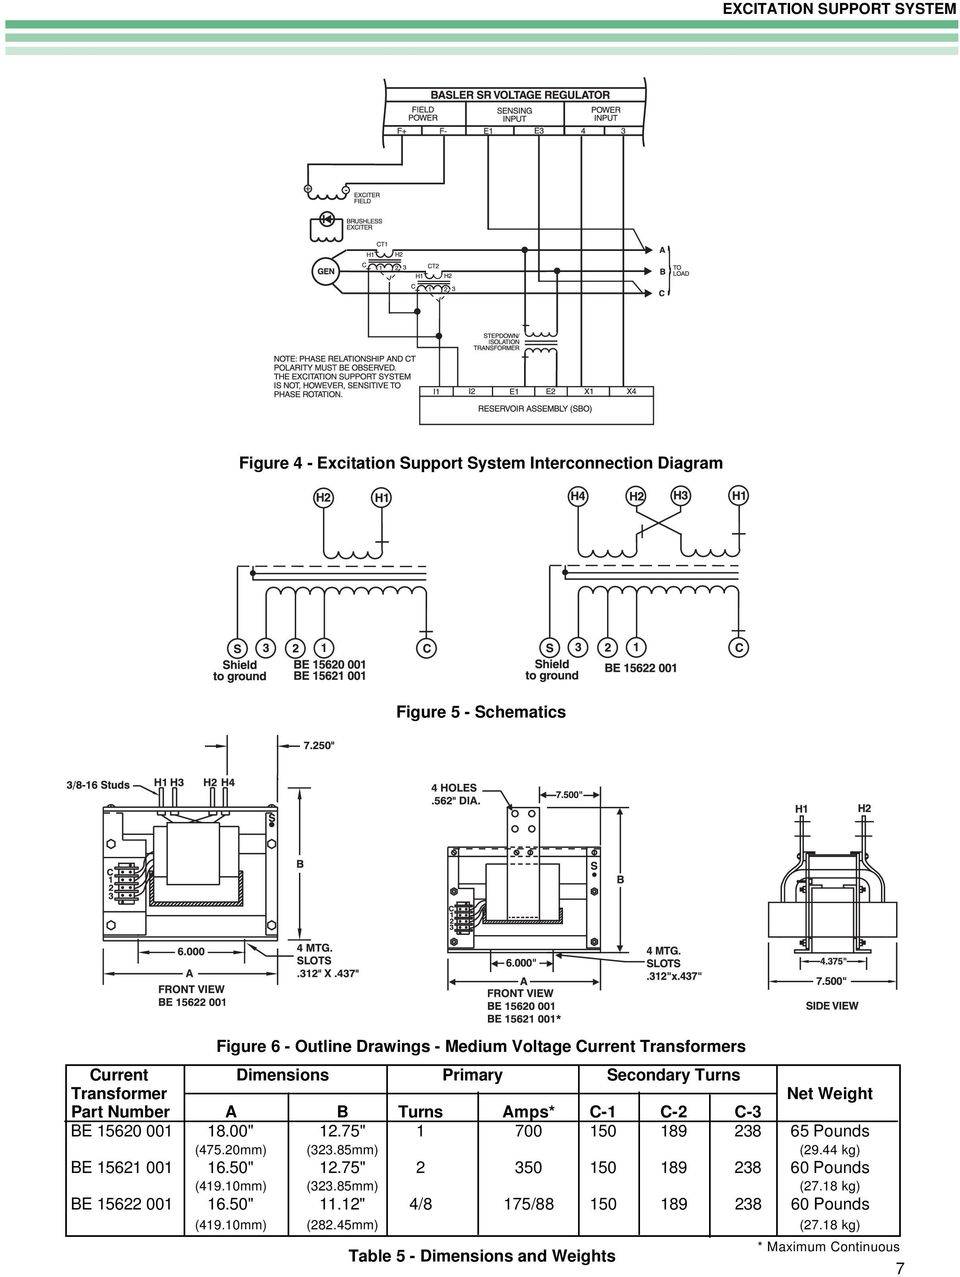 Basler Generator Wiring Diagram - 2012 Ford F650 Fuse Diagram -  source-auto3.yenpancane.jeanjaures37.fr | Basler Generator Wiring Diagram |  | Wiring Diagram Resource